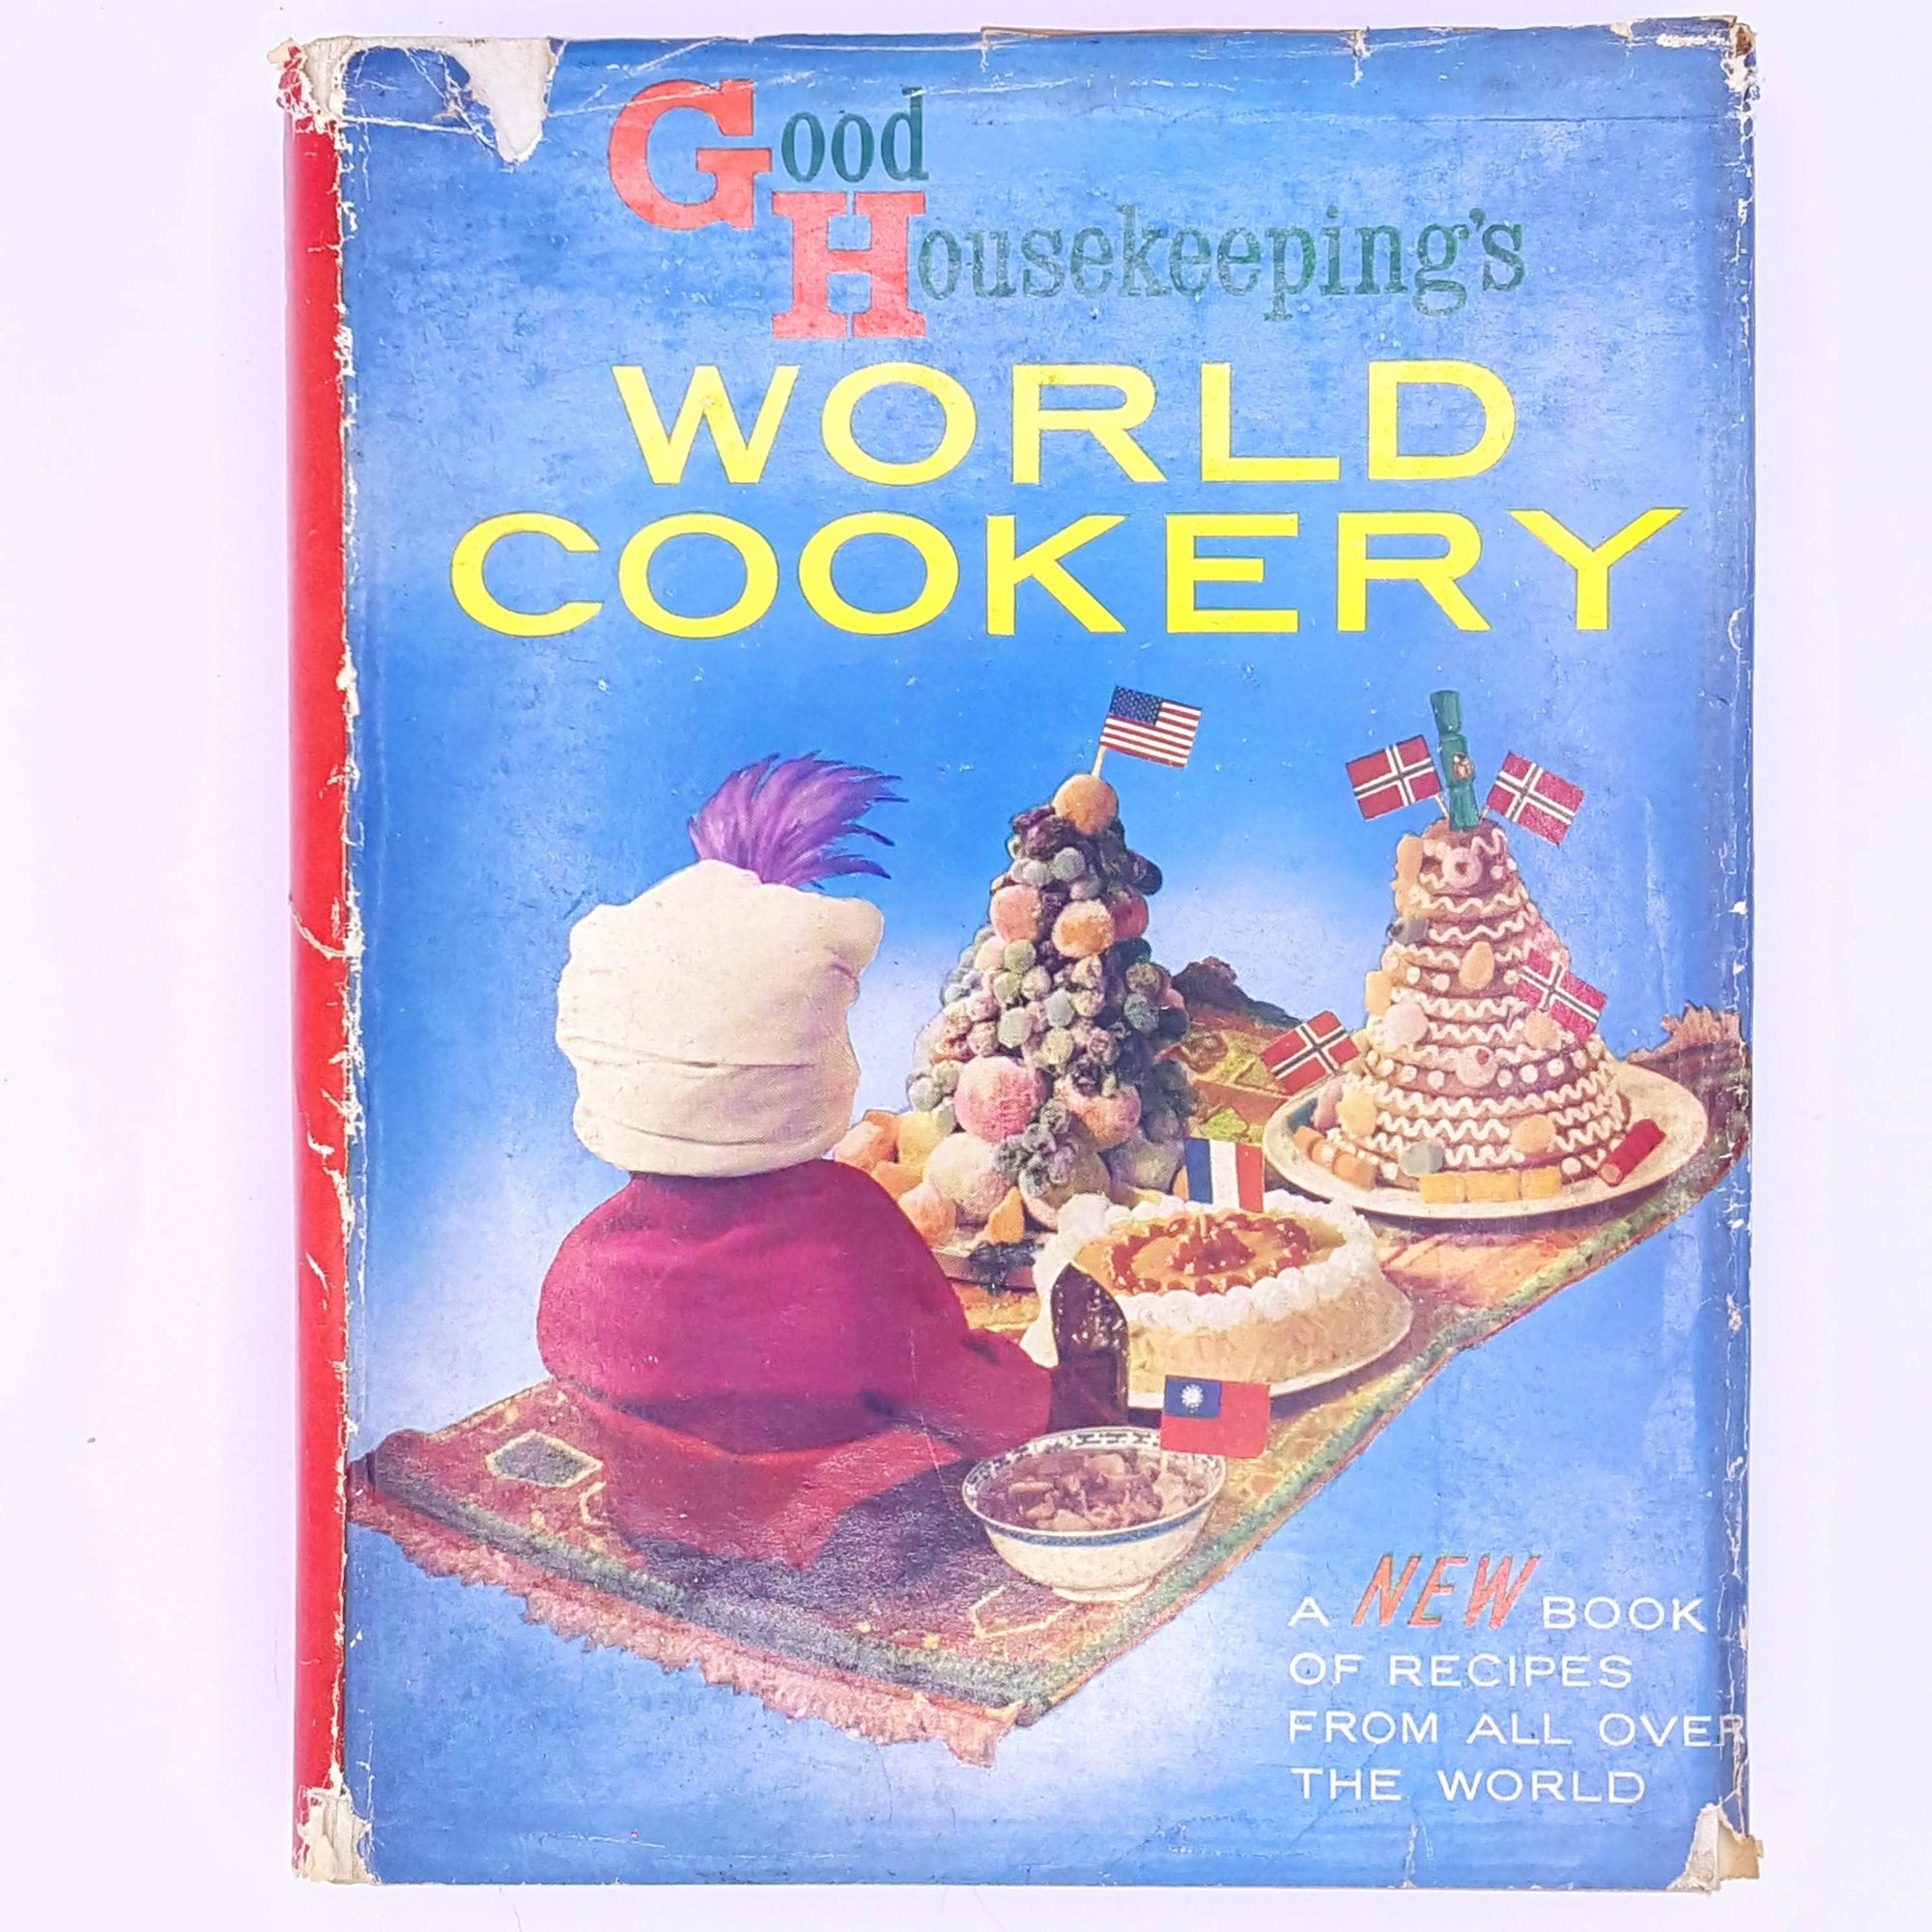 Good Housekeeping's World Cookery